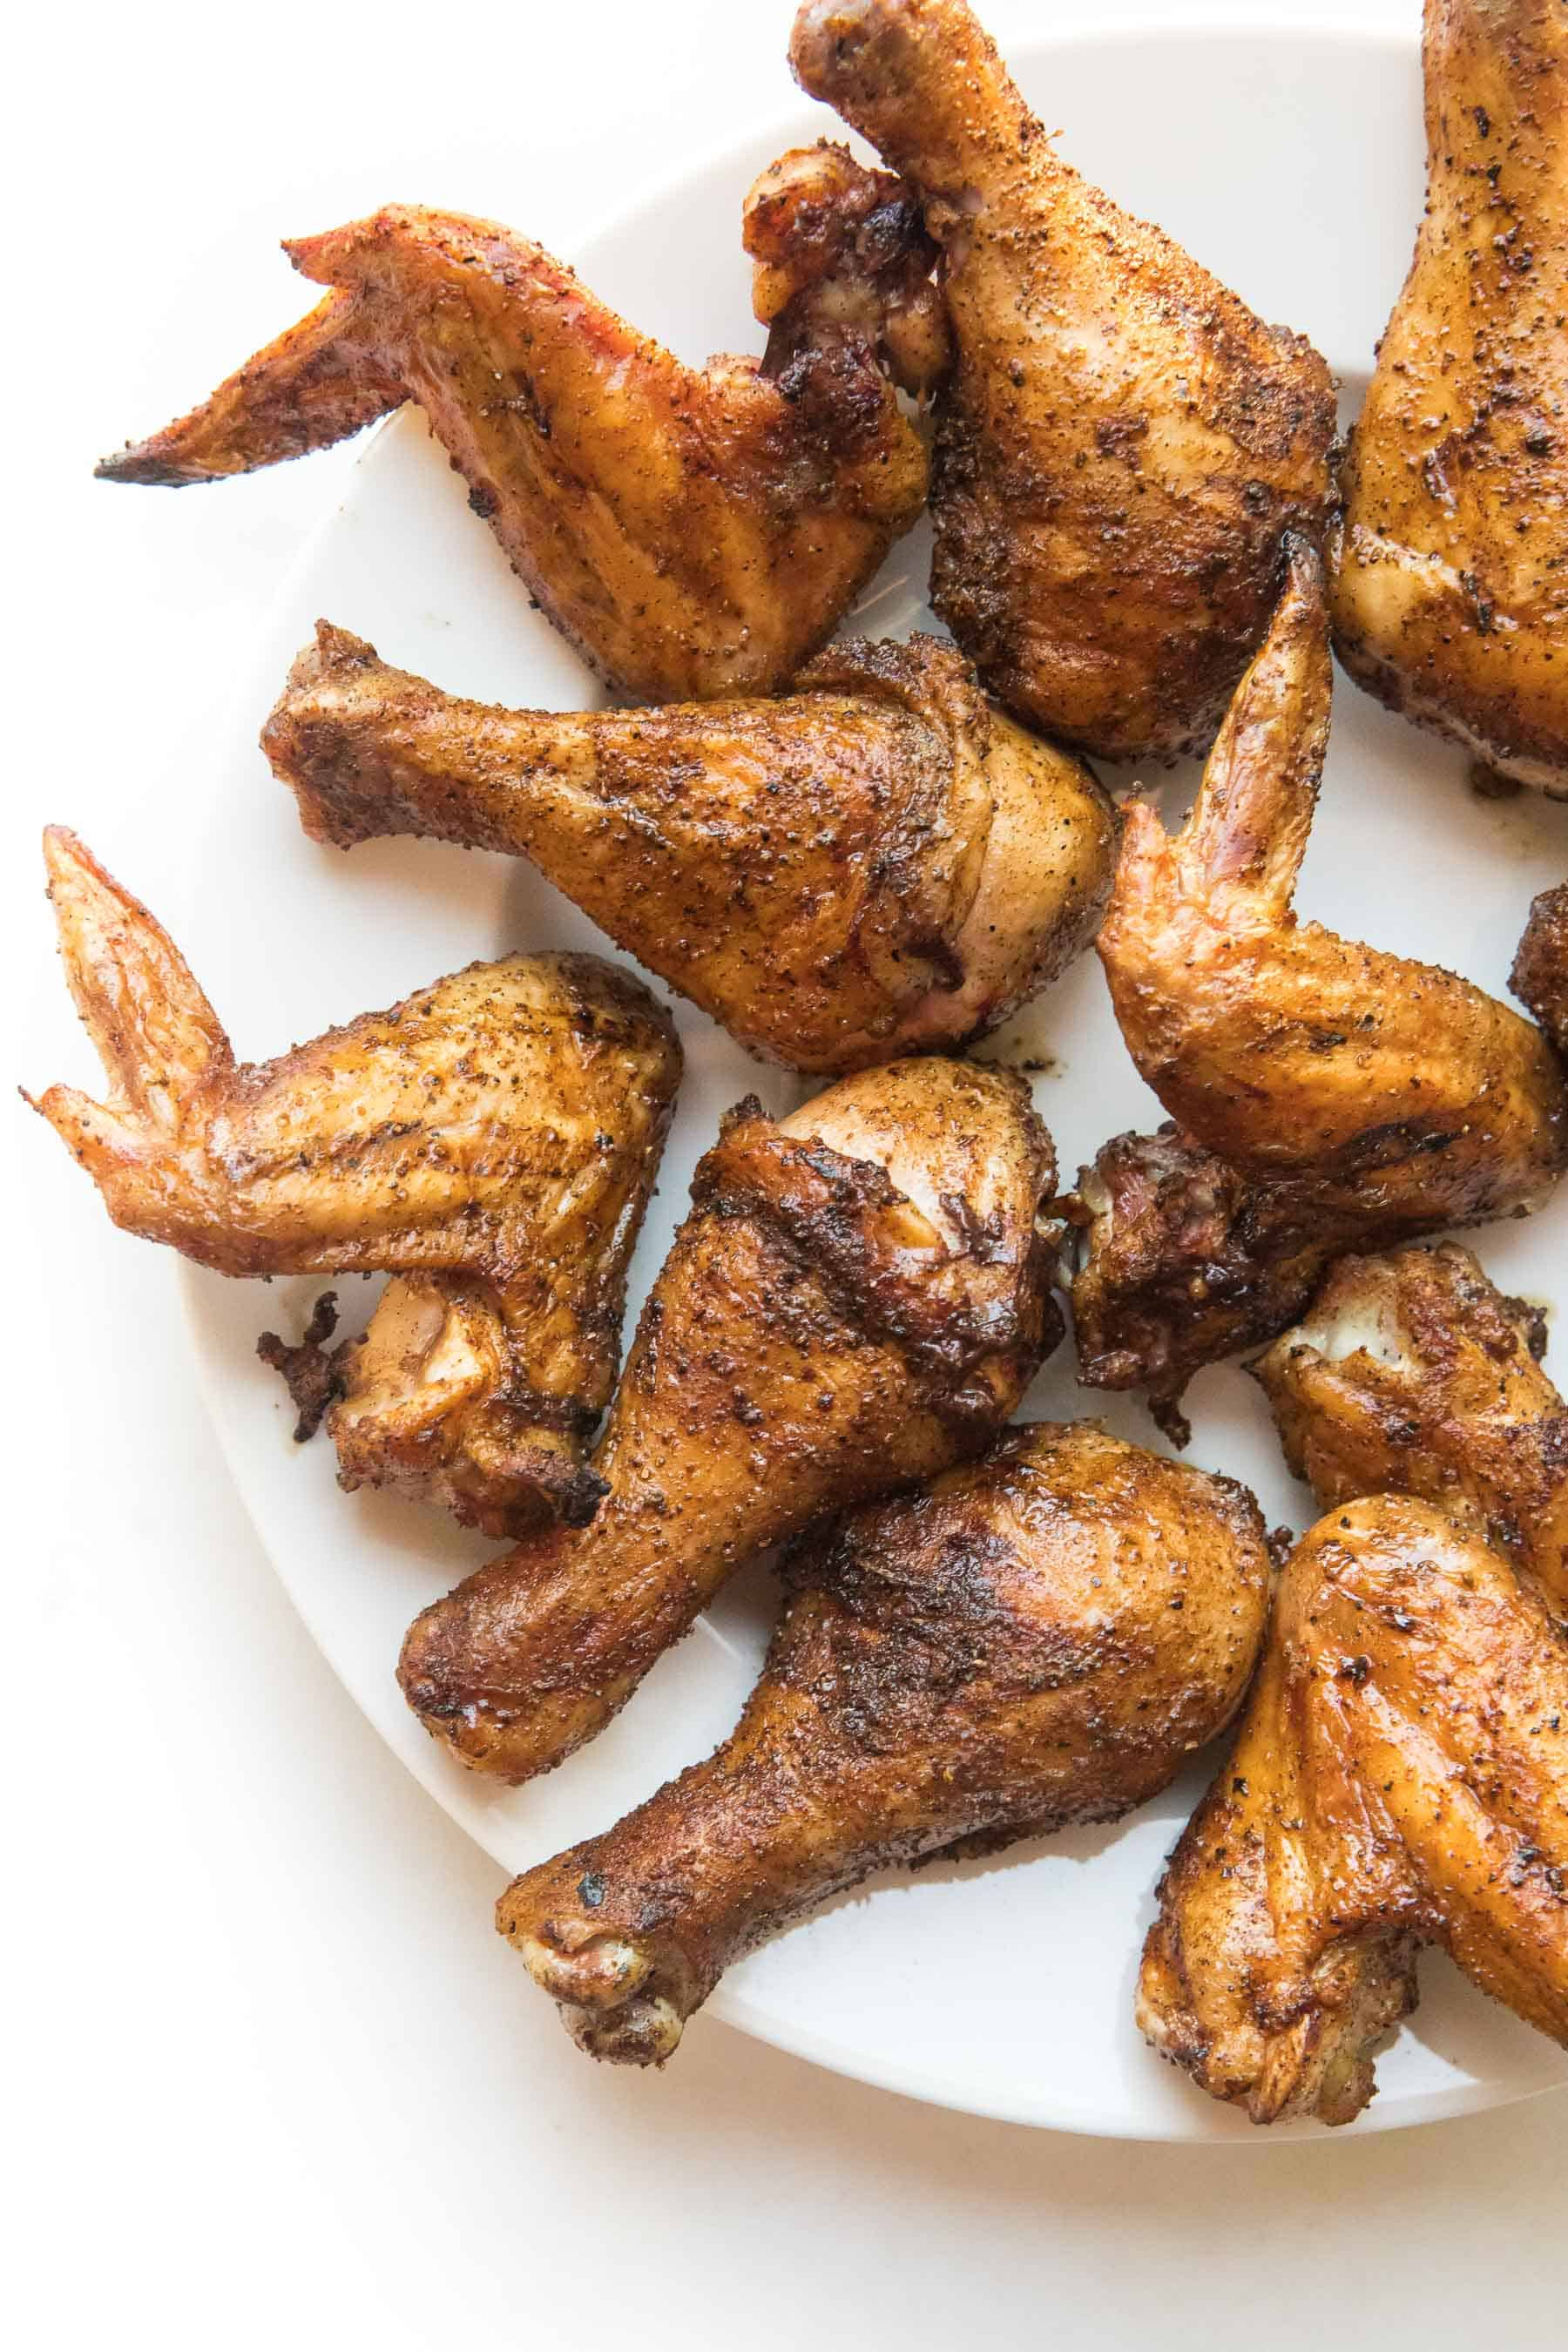 crispy roasted drumsticks + wings on a white plate and background